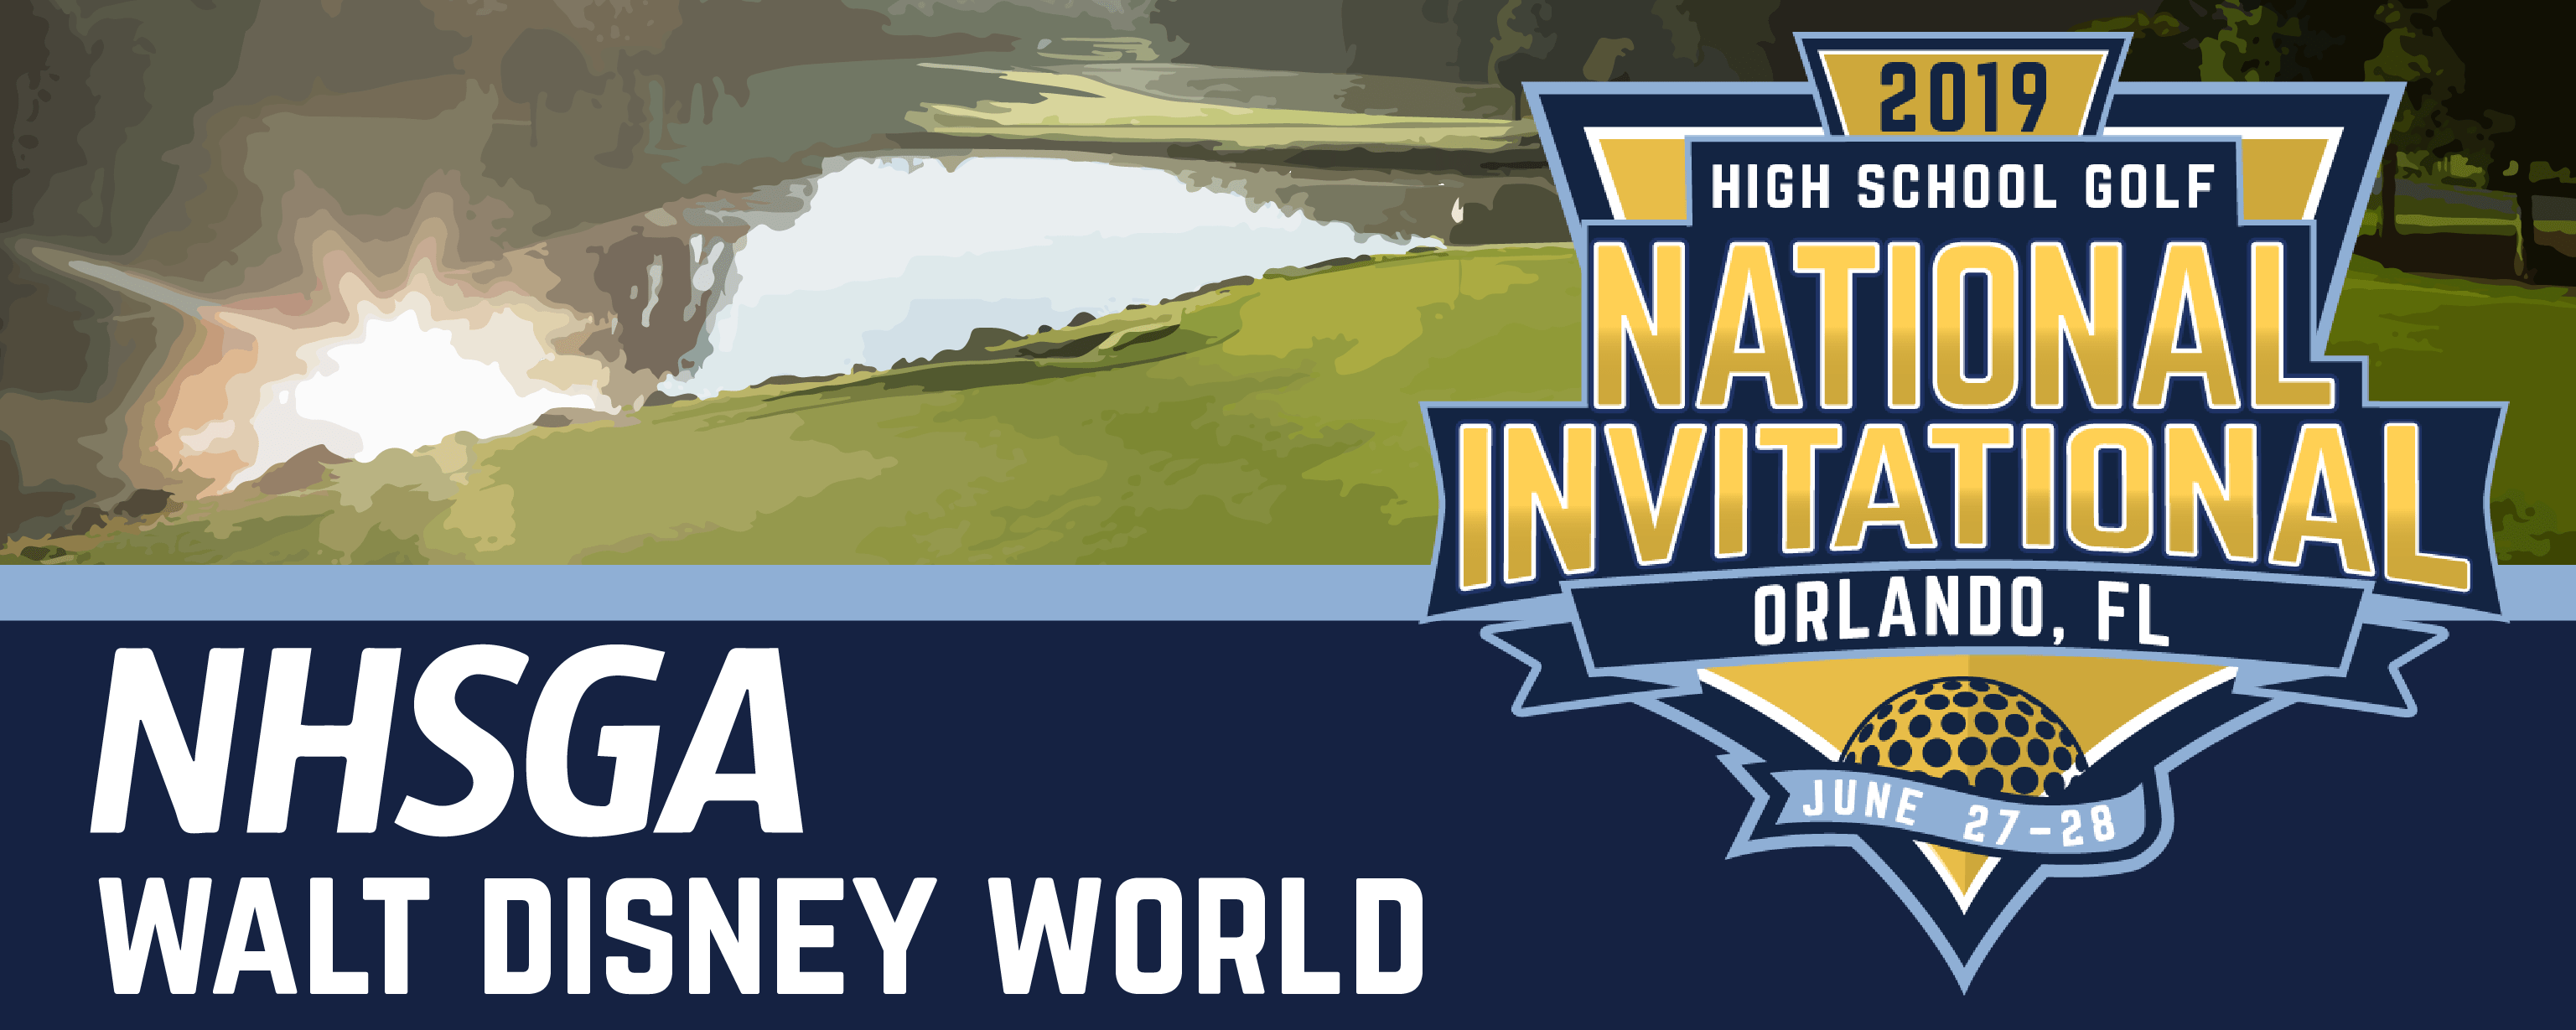 2019 High School Golf National Invitational.